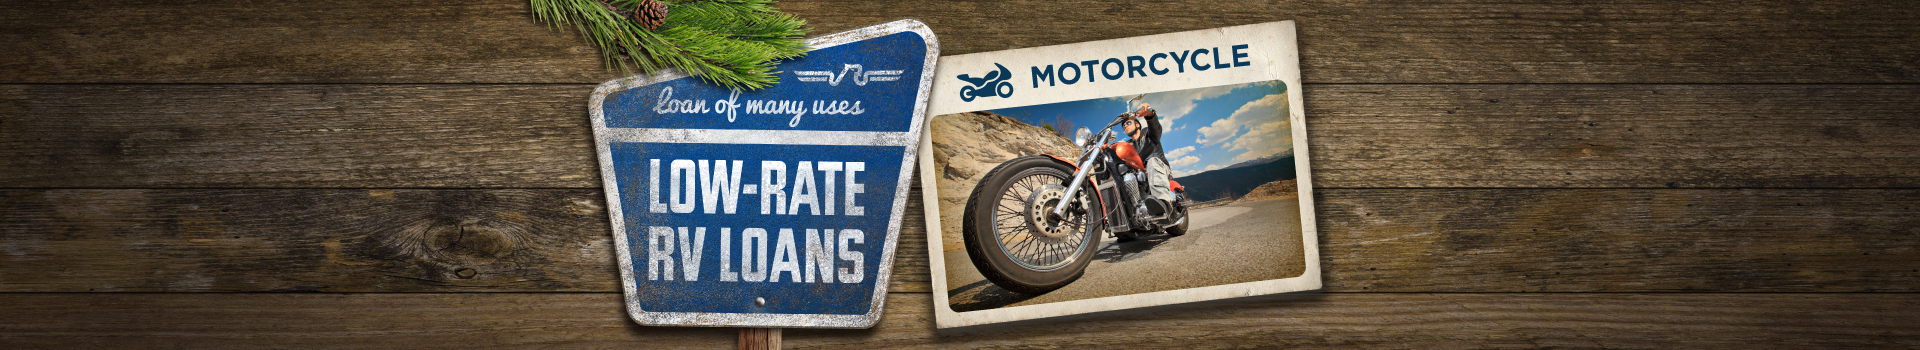 Capital One Motorcycle Loans >> Motorcycle Loans America First Credit Union